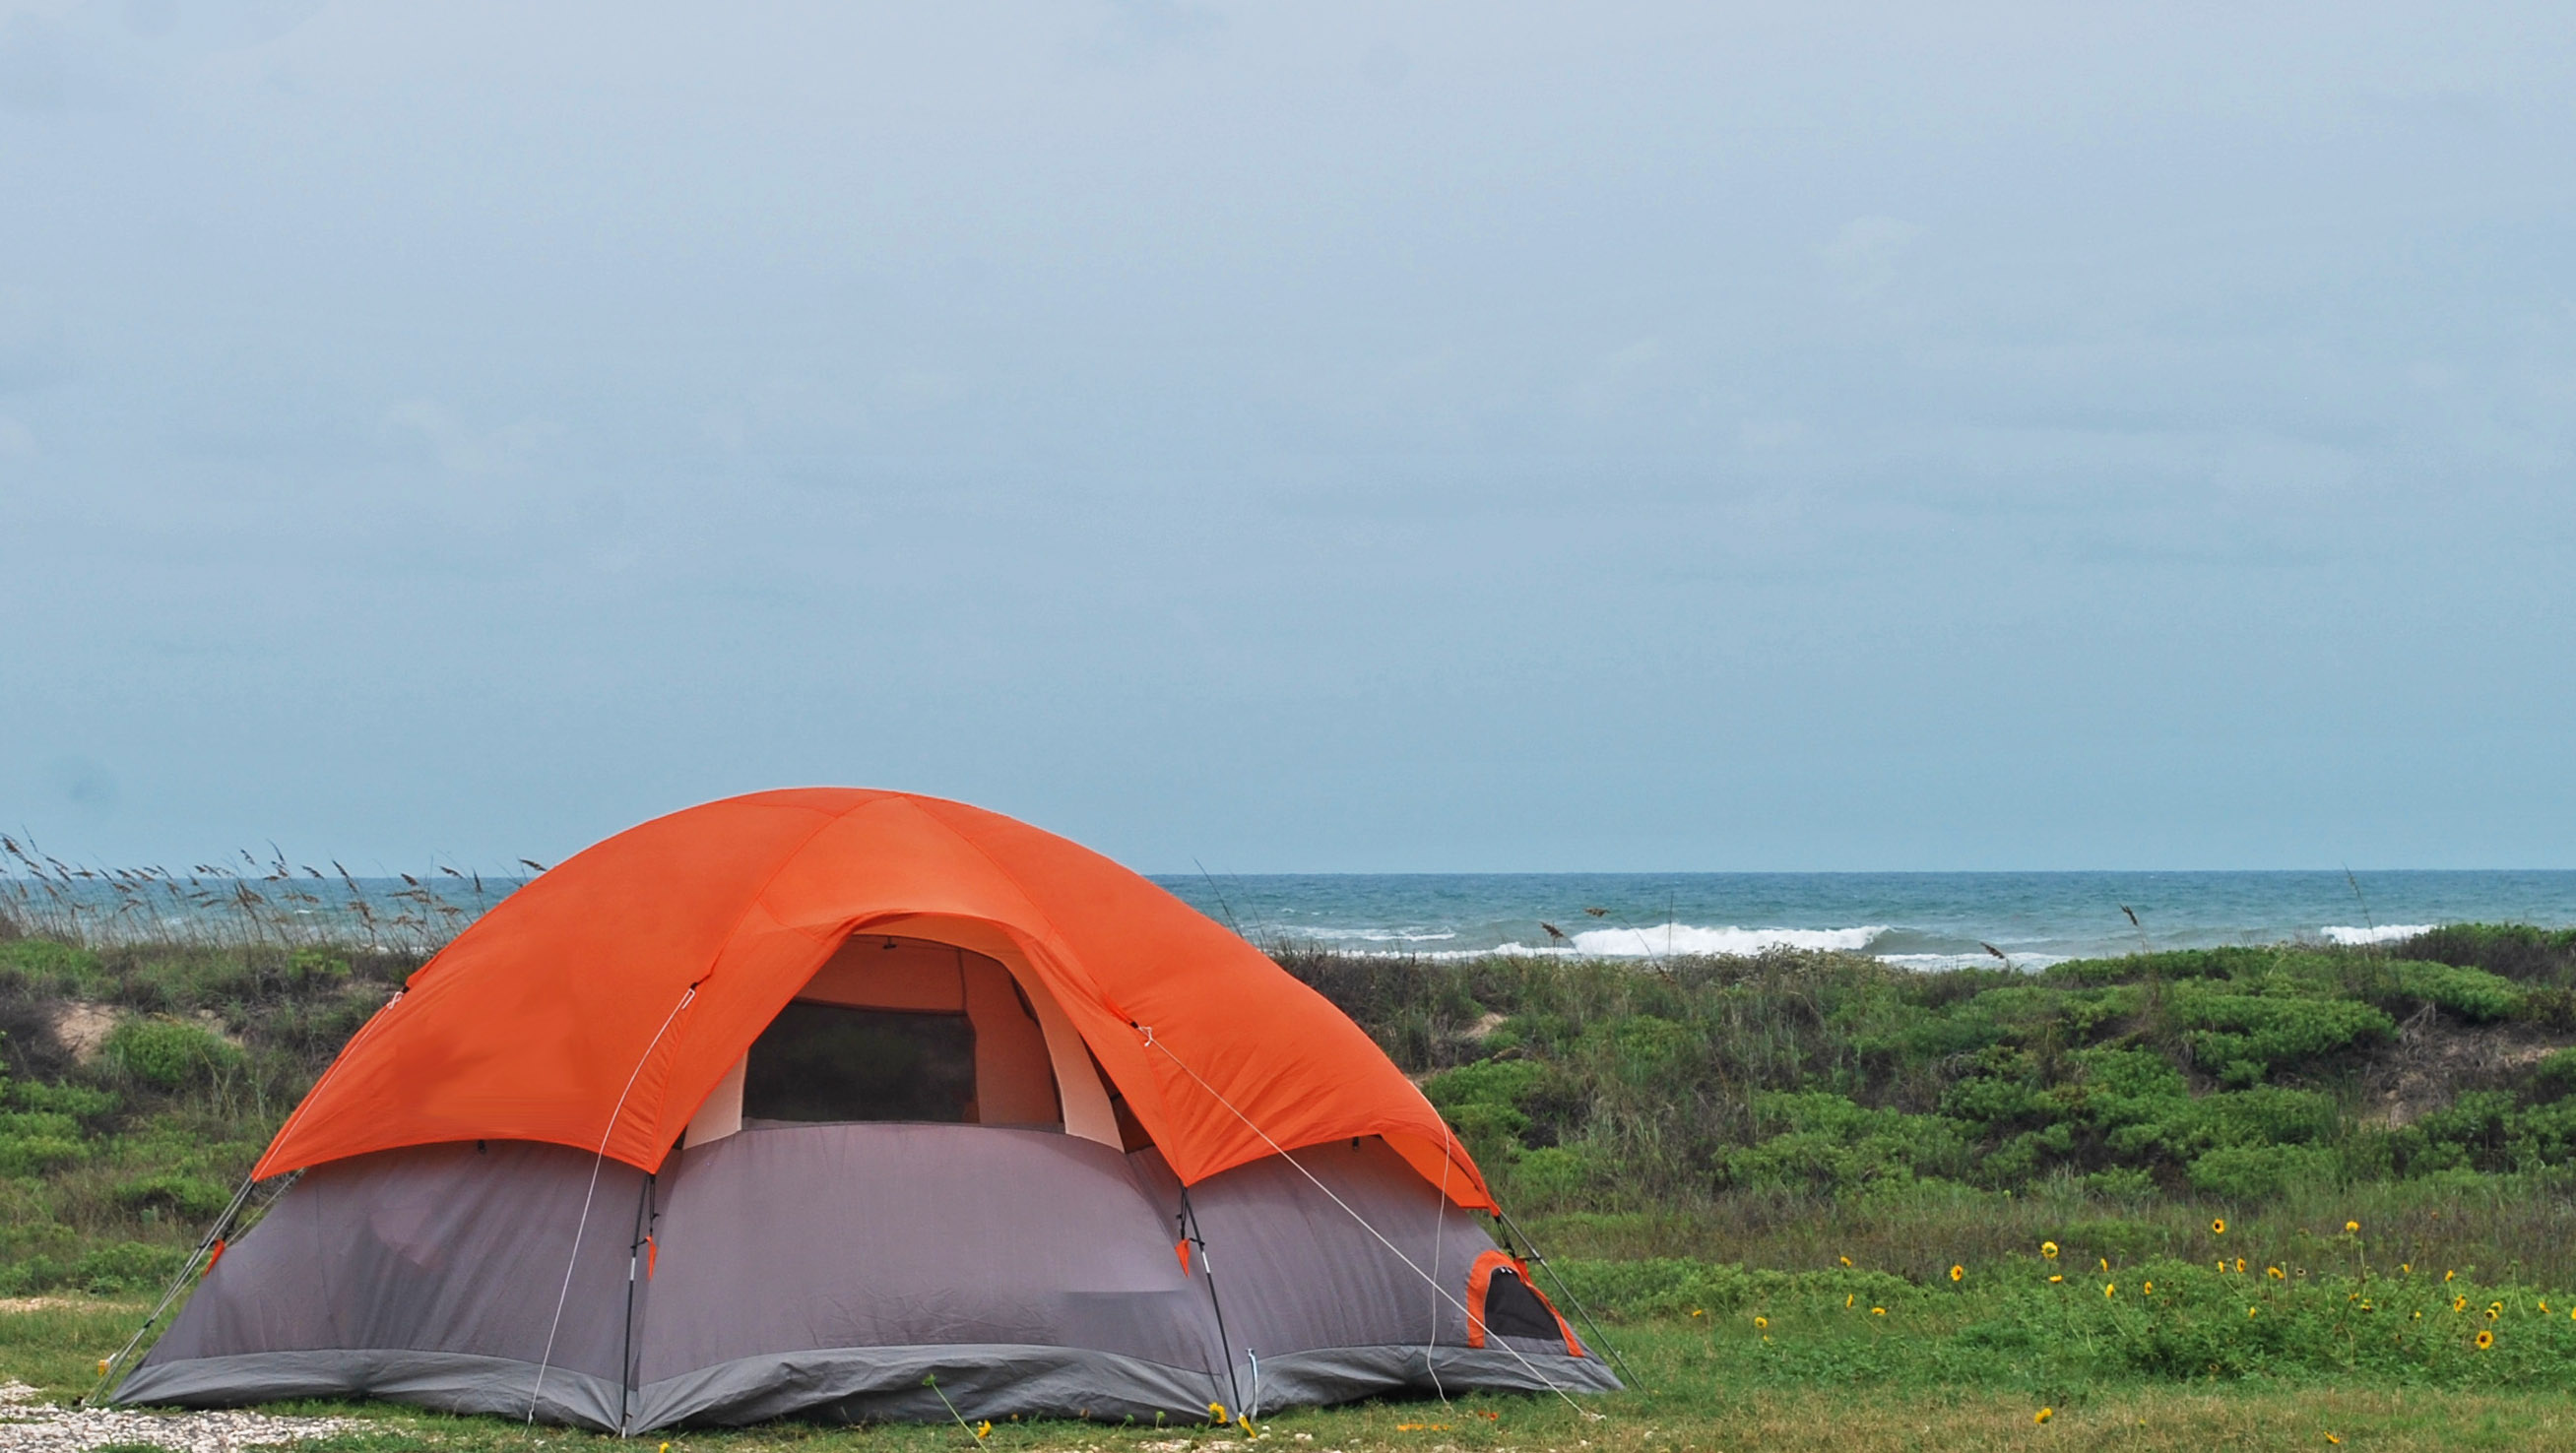 Nearest Open Gas Station >> Camping - Padre Island National Seashore (U.S. National ...